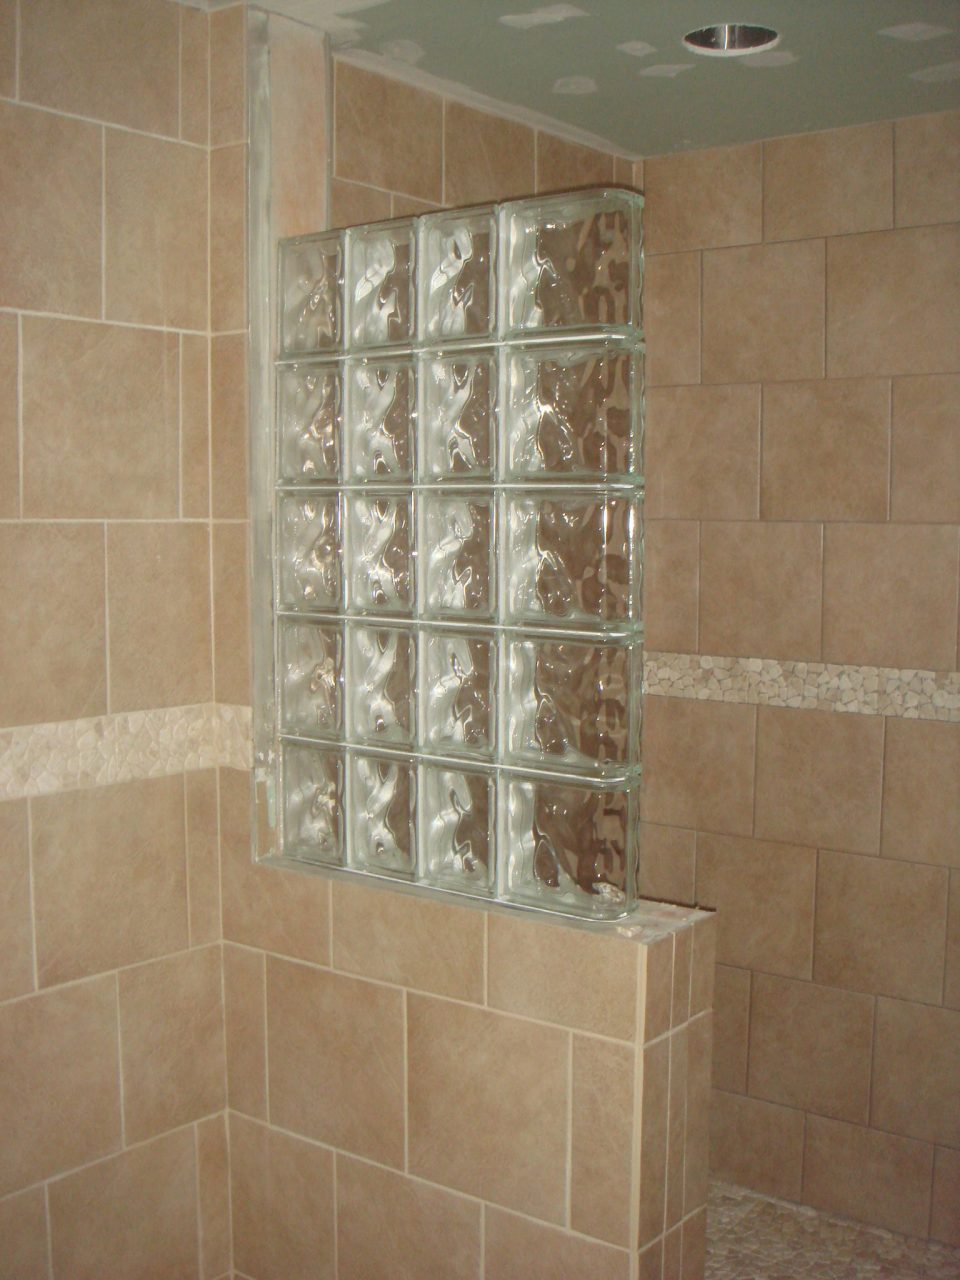 Half Wall Shower Design An Addition Some Glass Block Wall And